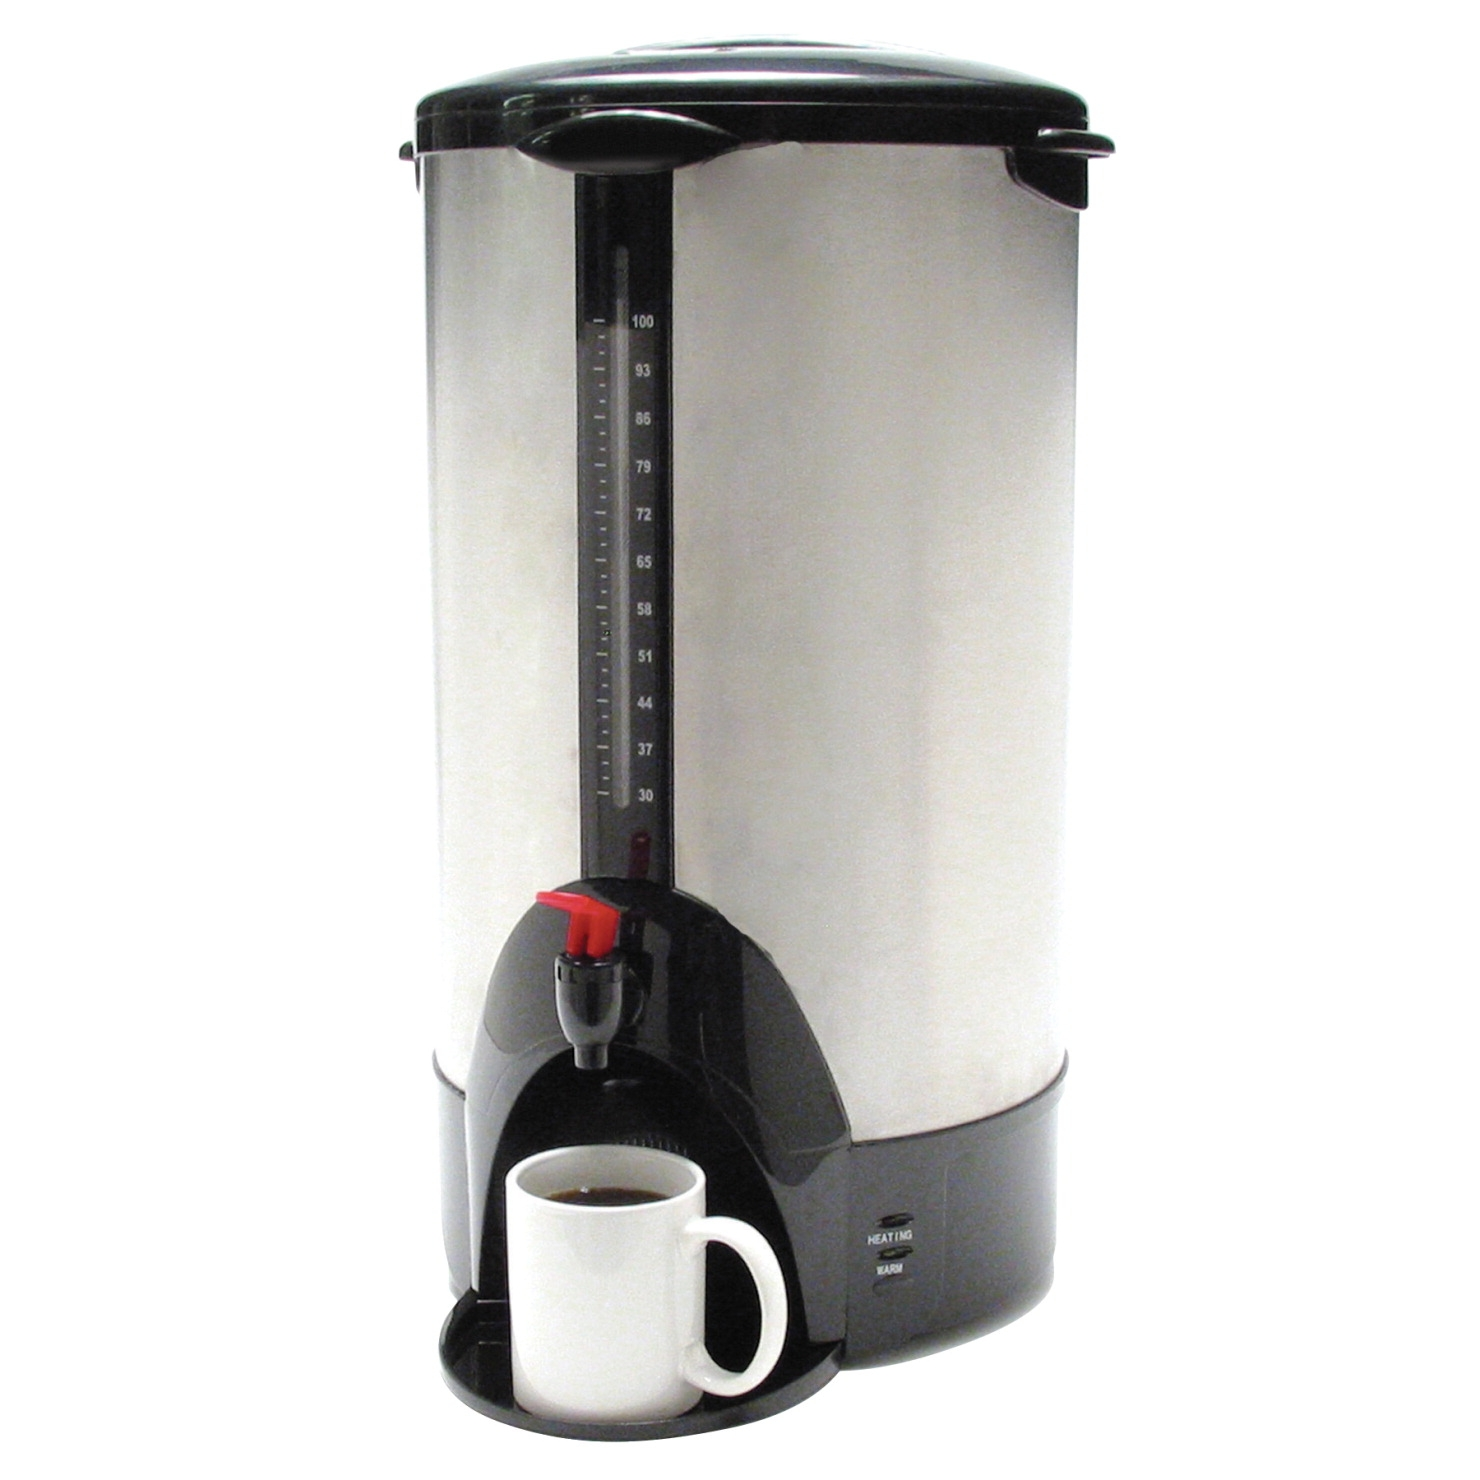 Coffeepro Commercial Urn/coffee Maker; 13-1/2 X 12-1/2 X 23 In; 100 Cup; Stainless Steel - 1334421 - Facilities Management Facility Supplies Machines Appliances Kitchen Appliances 1334421